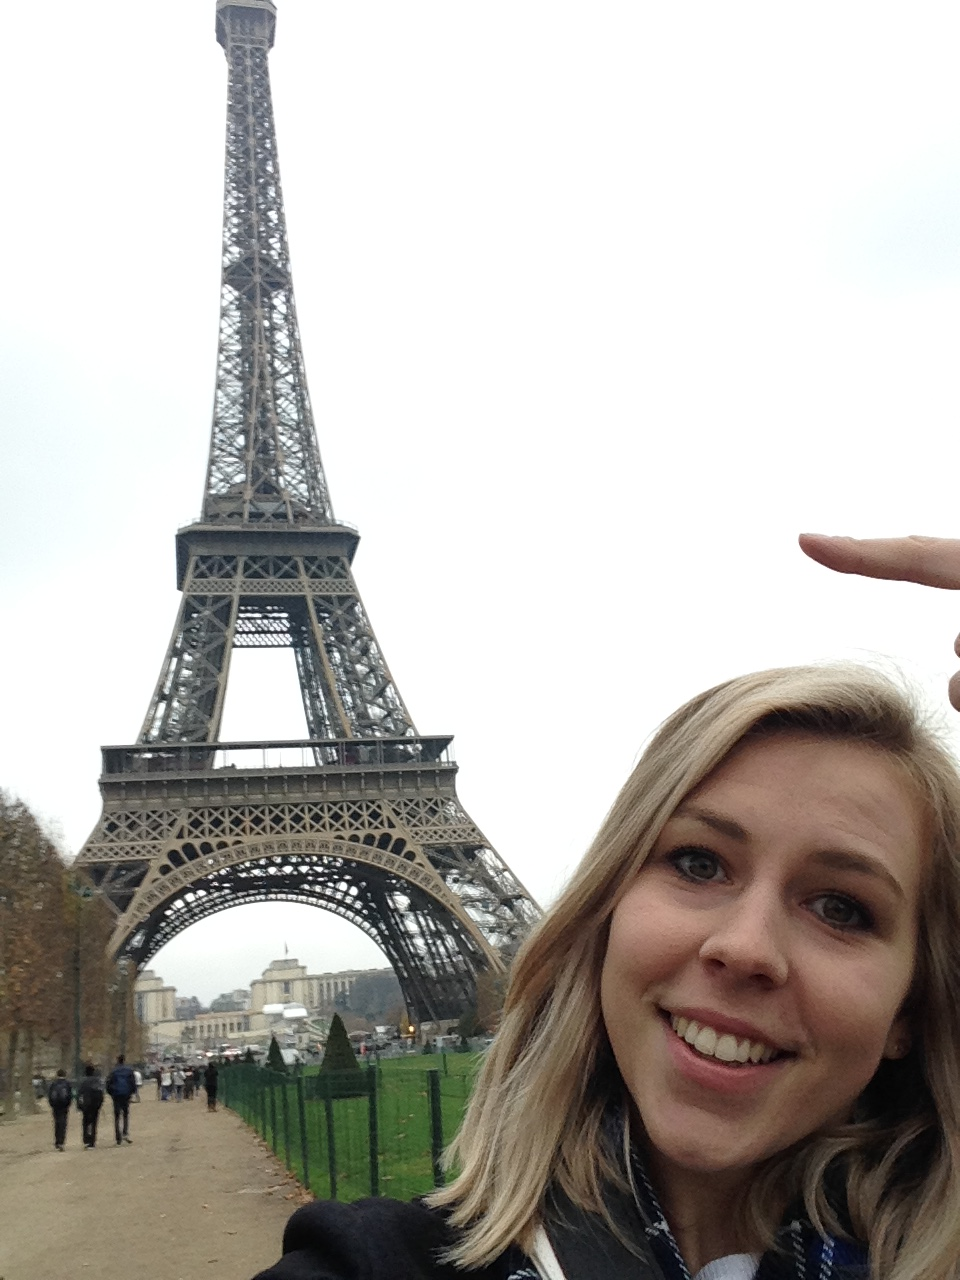 Me and the eiffel tower...I promise to take better photos this time